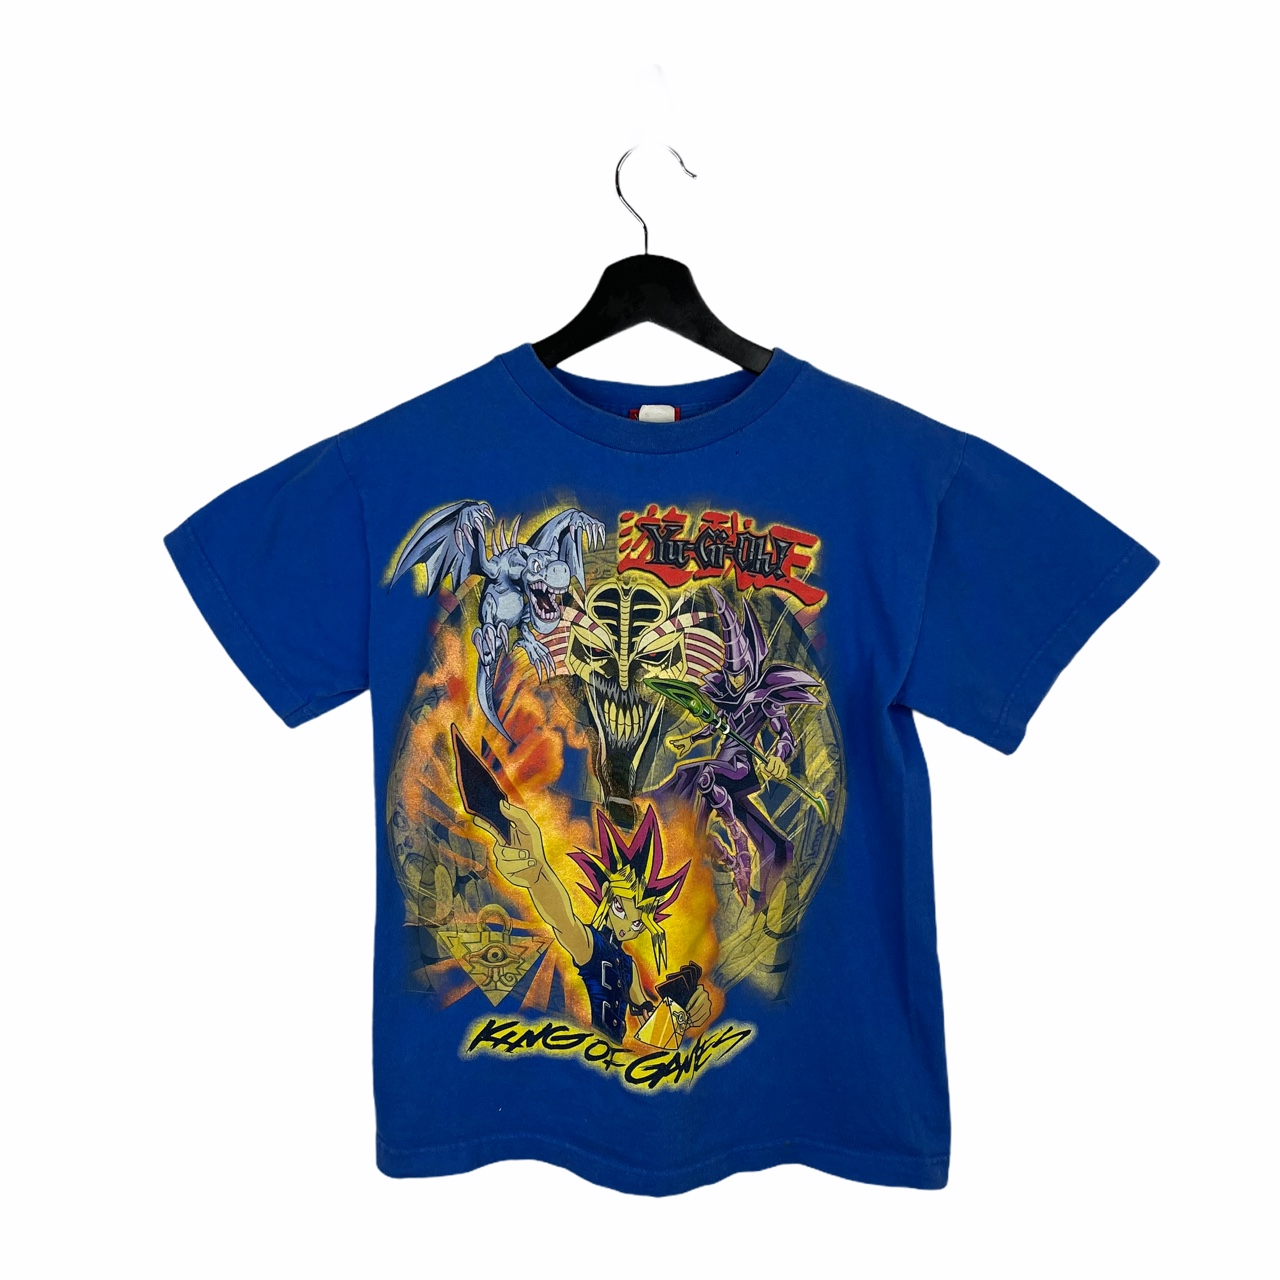 Product Image 1 - Vintage Yu-Gi-Oh! Shirt  In great